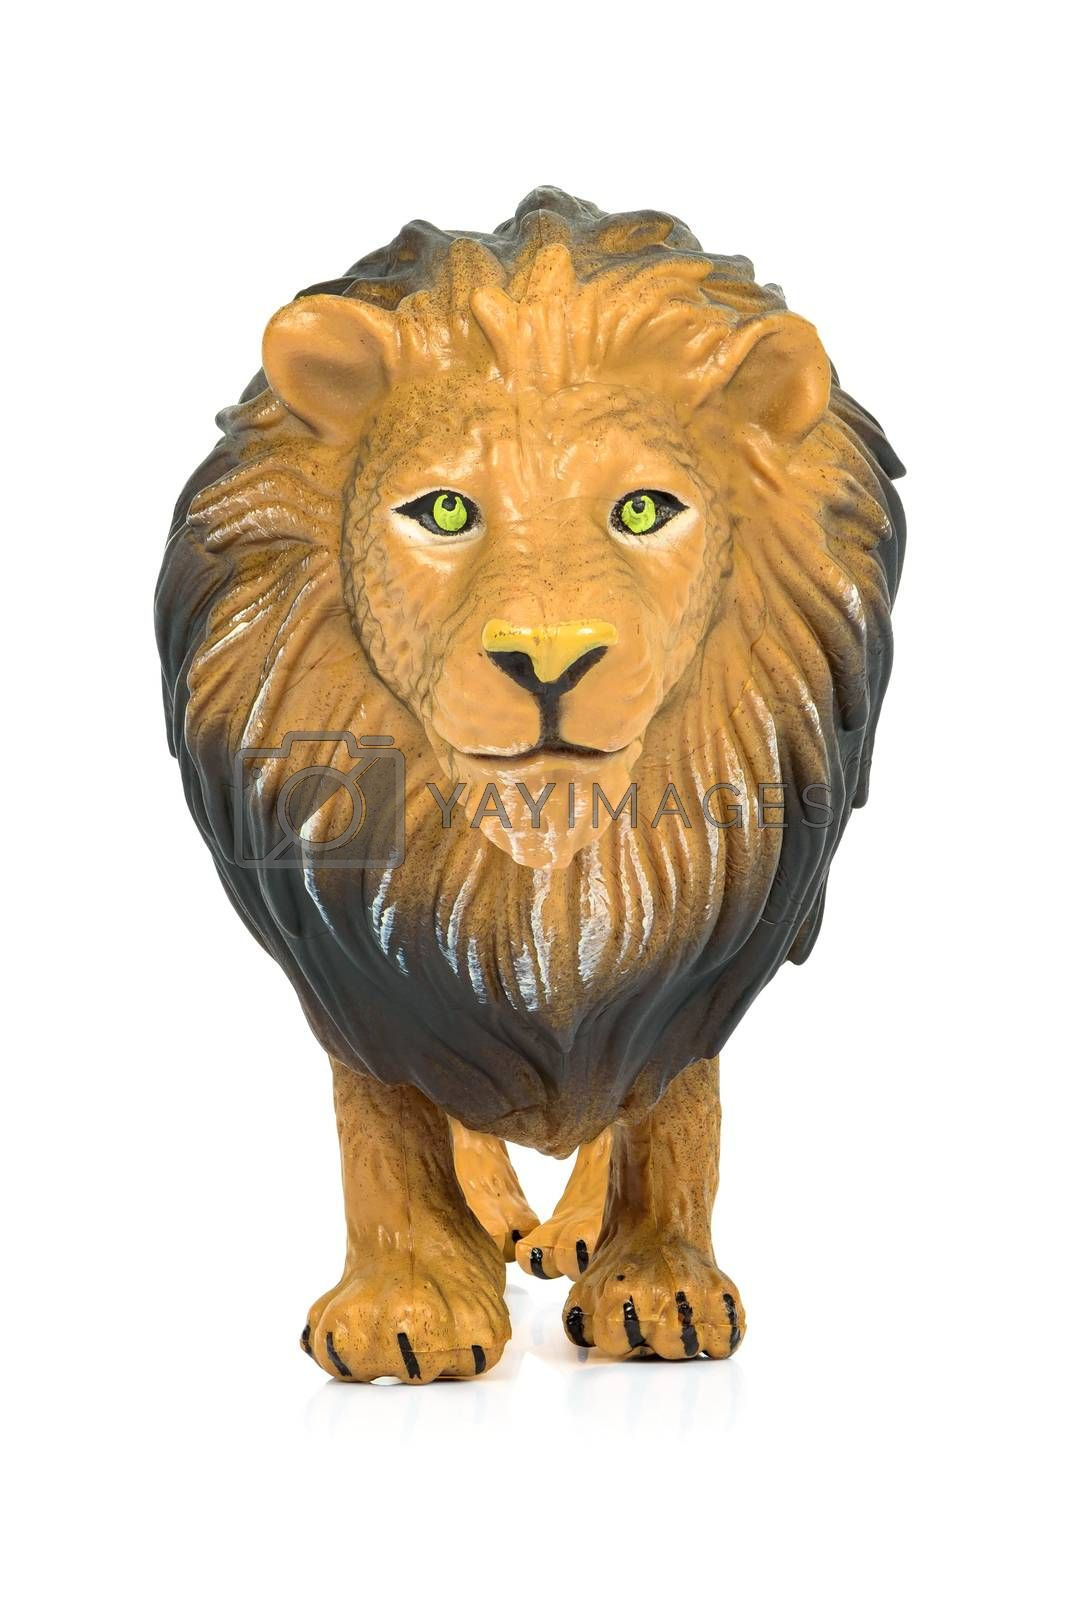 Lion toy figure isolated on white background with clipping path